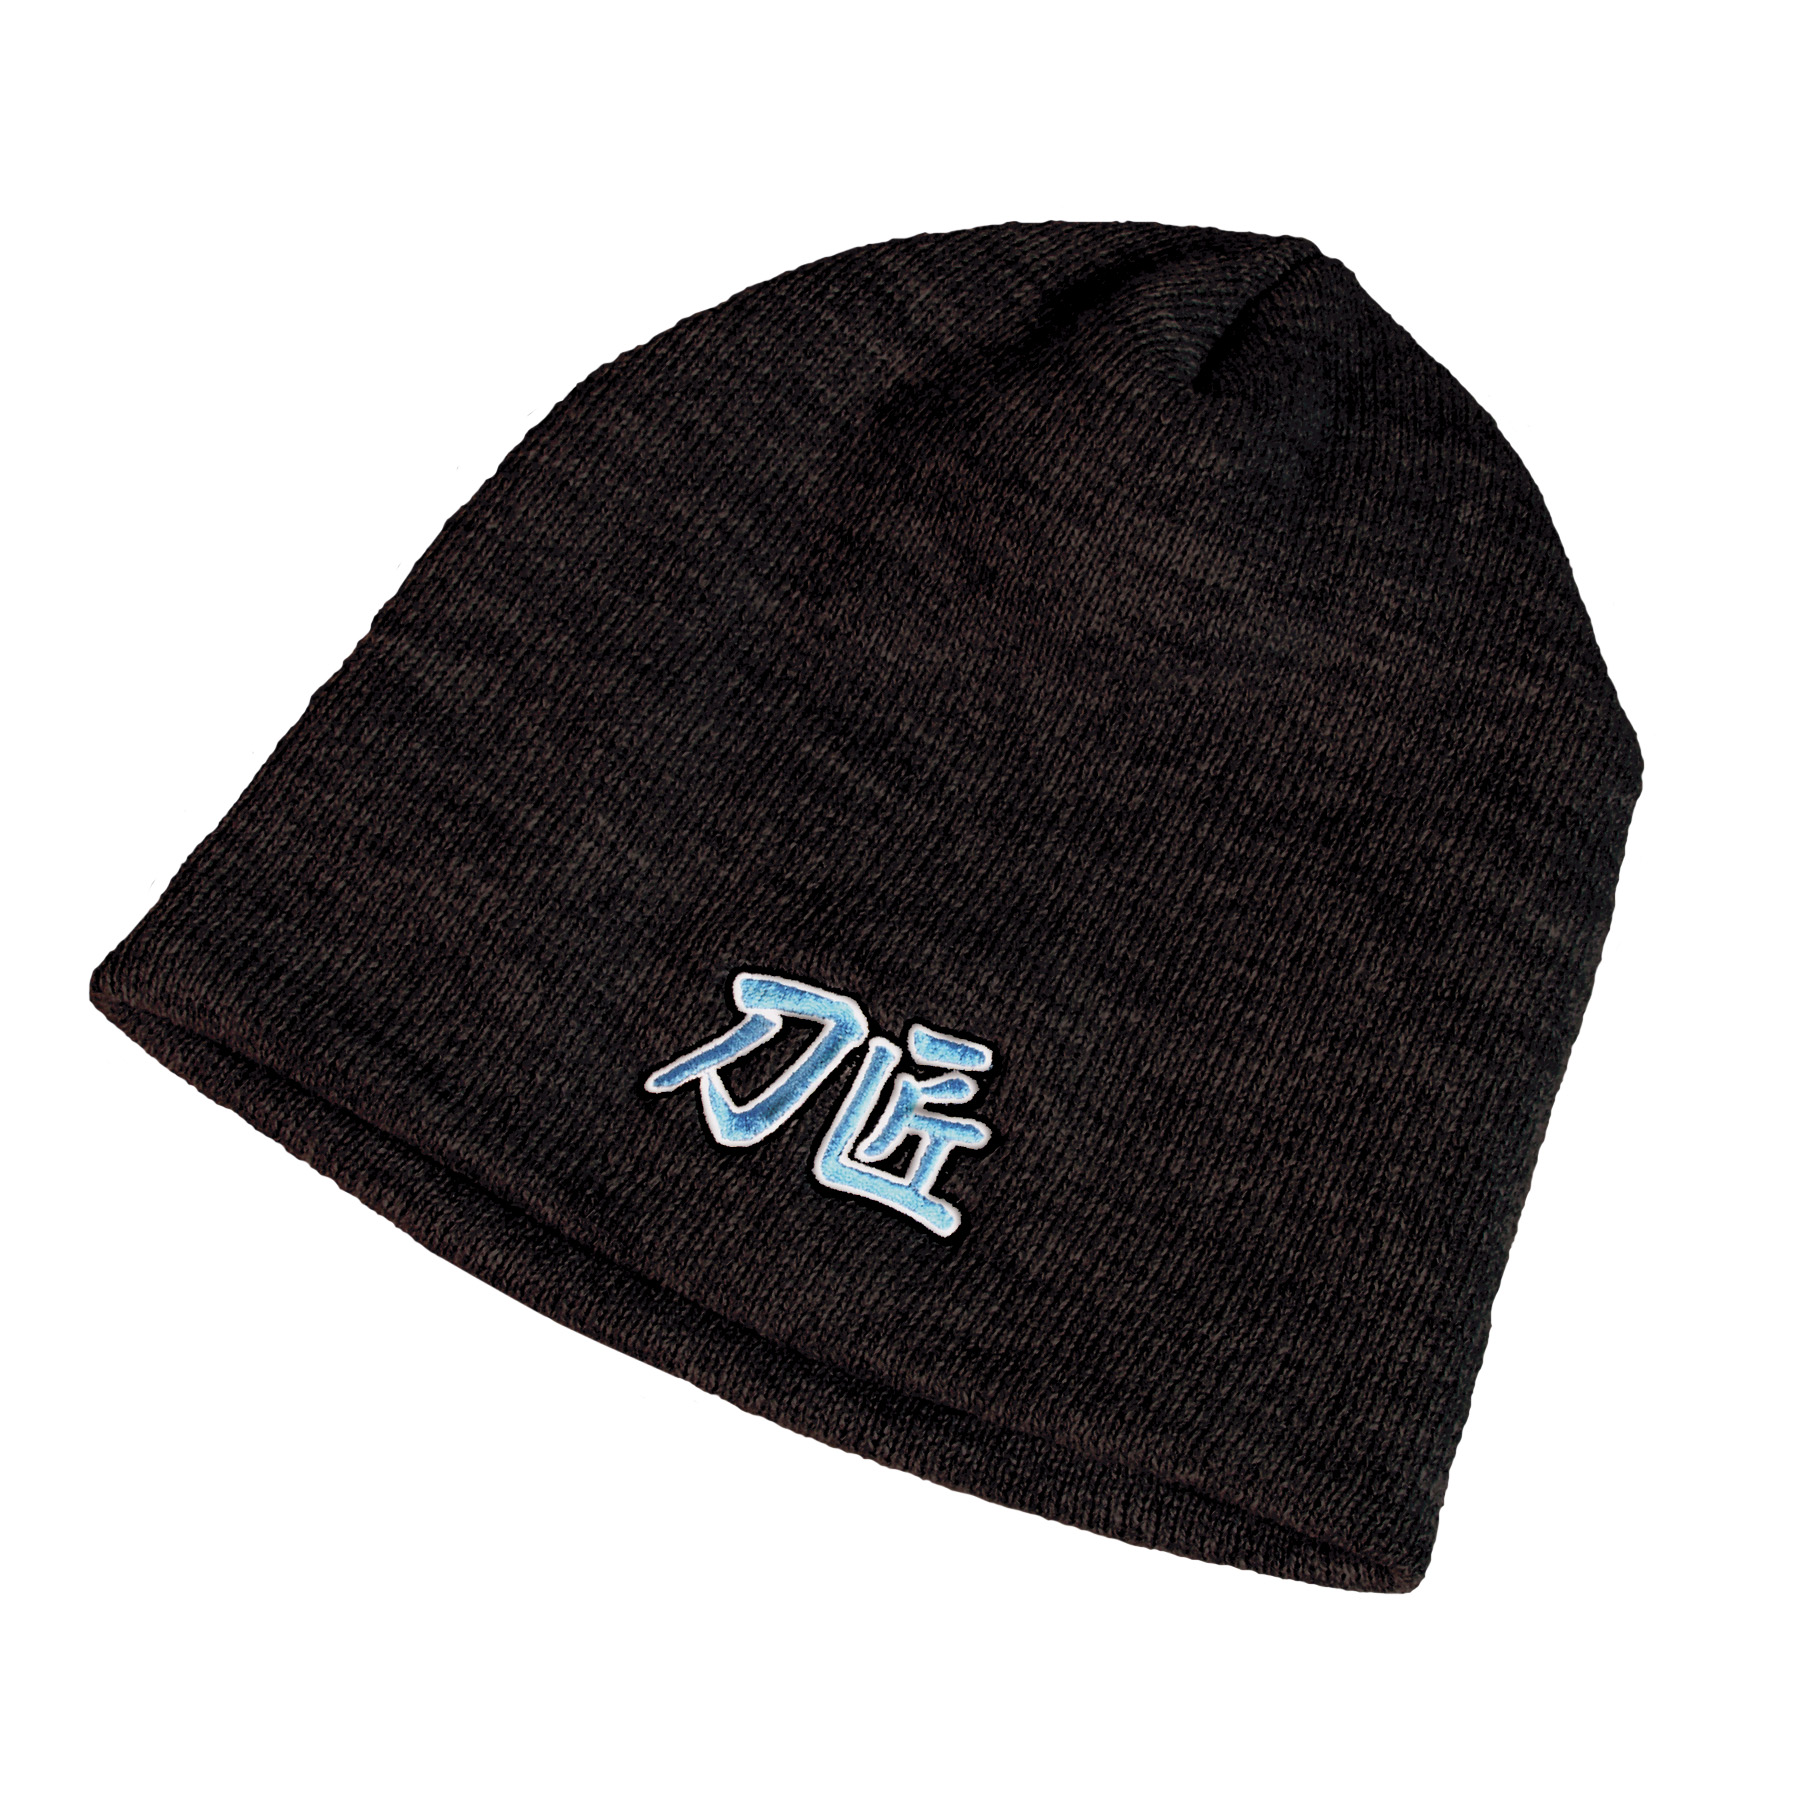 94HCSKBB - COLD STEEL Cold Steel Knit Beanie (Black)